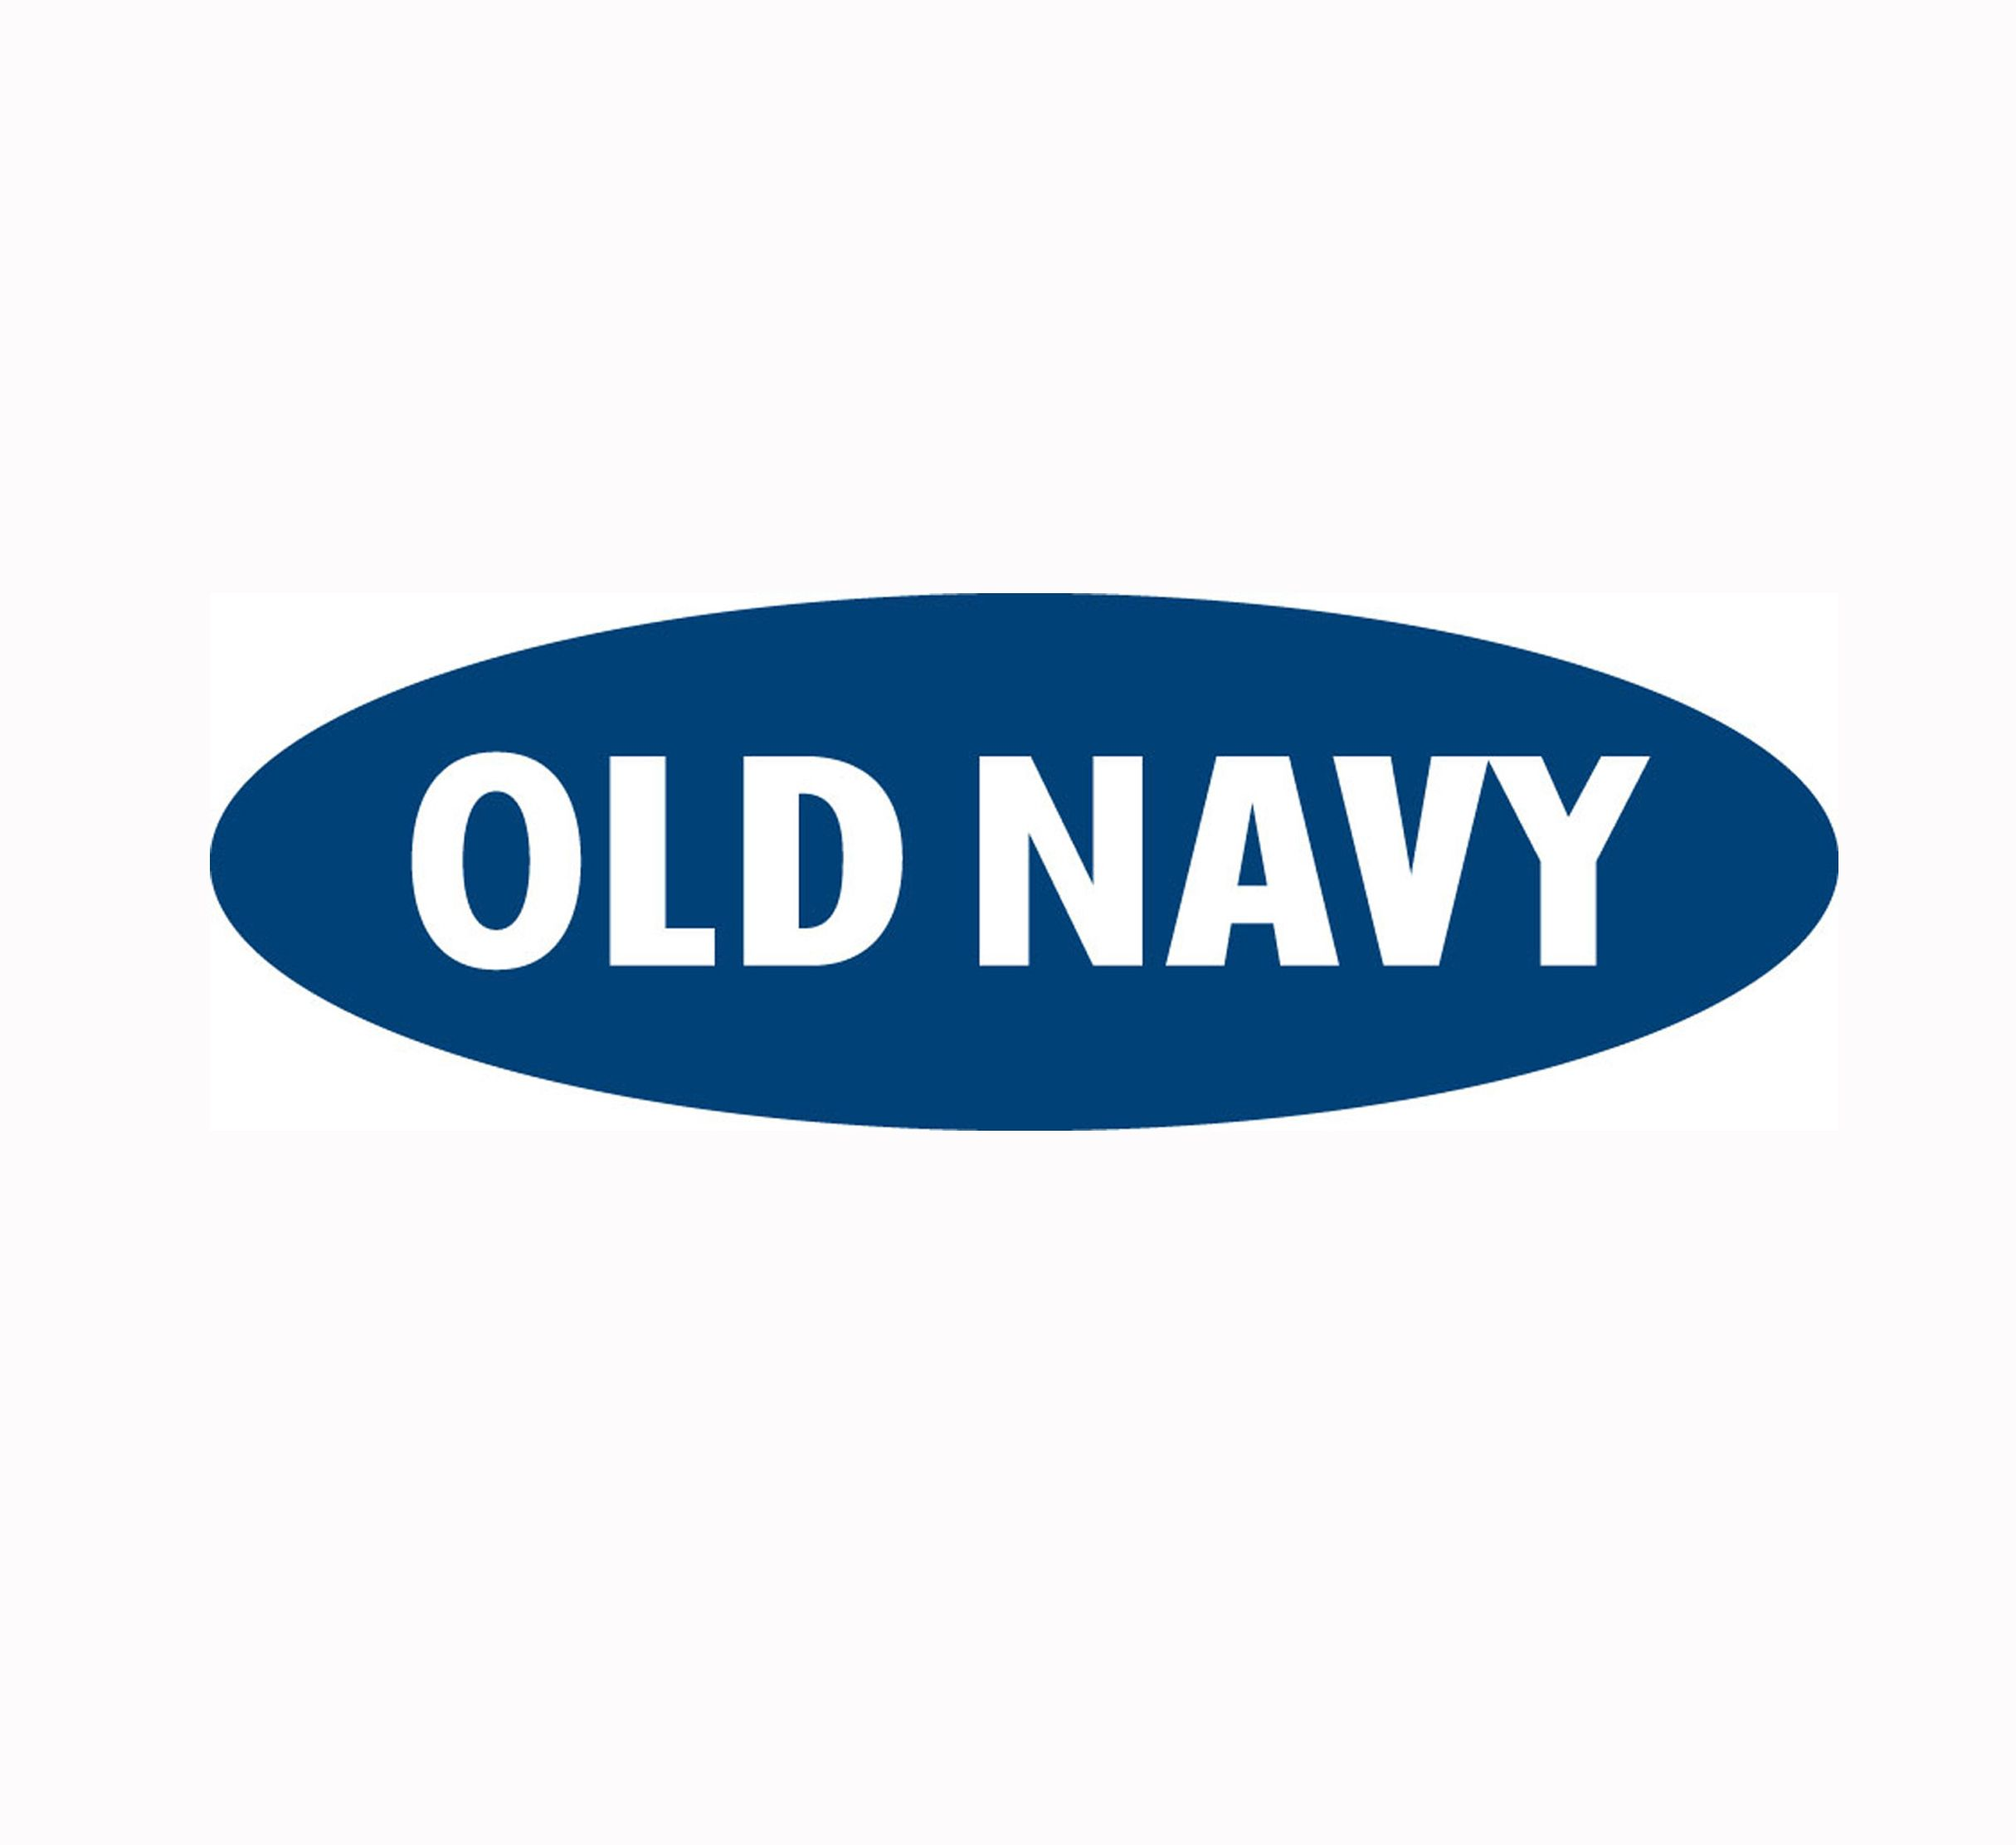 Old Navy Logo Google Search Logos Pinterest Logo